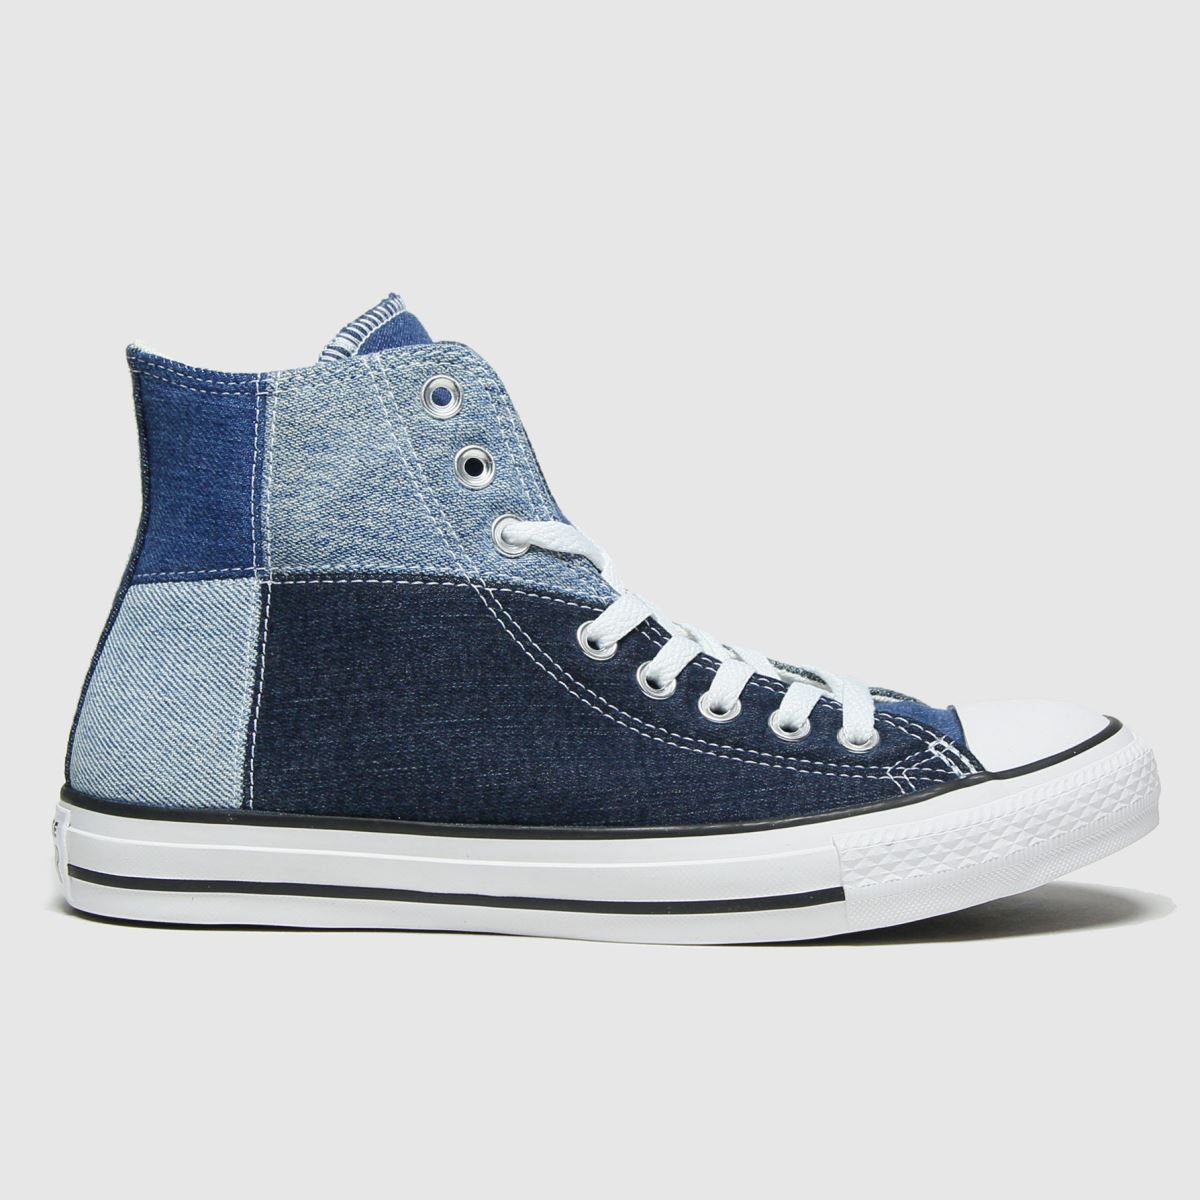 Converse Navy & Pl Blue Hi Upcycled Patchwor Trainers